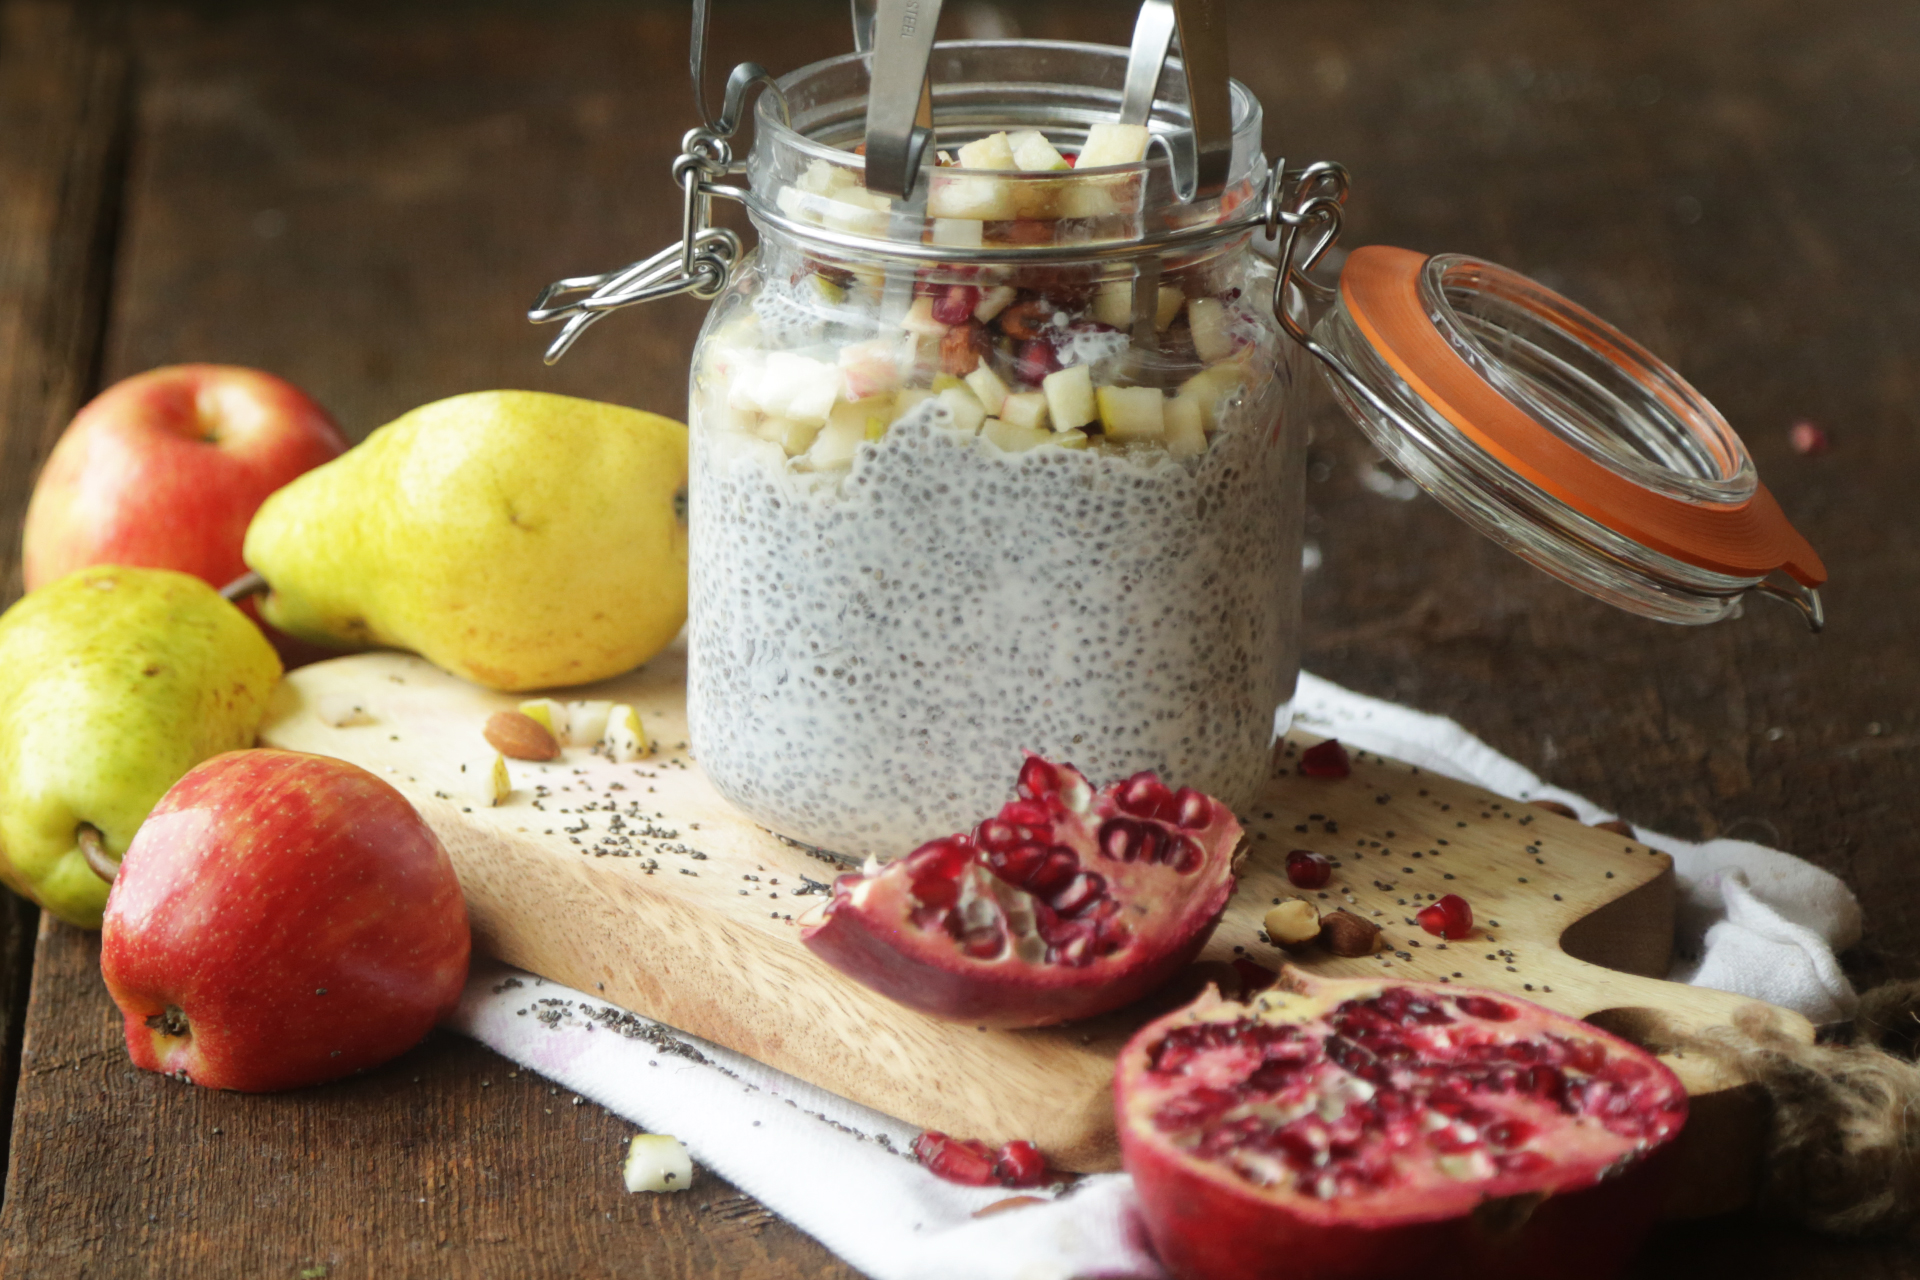 How to Make Chia Seed Pudding with Fruit